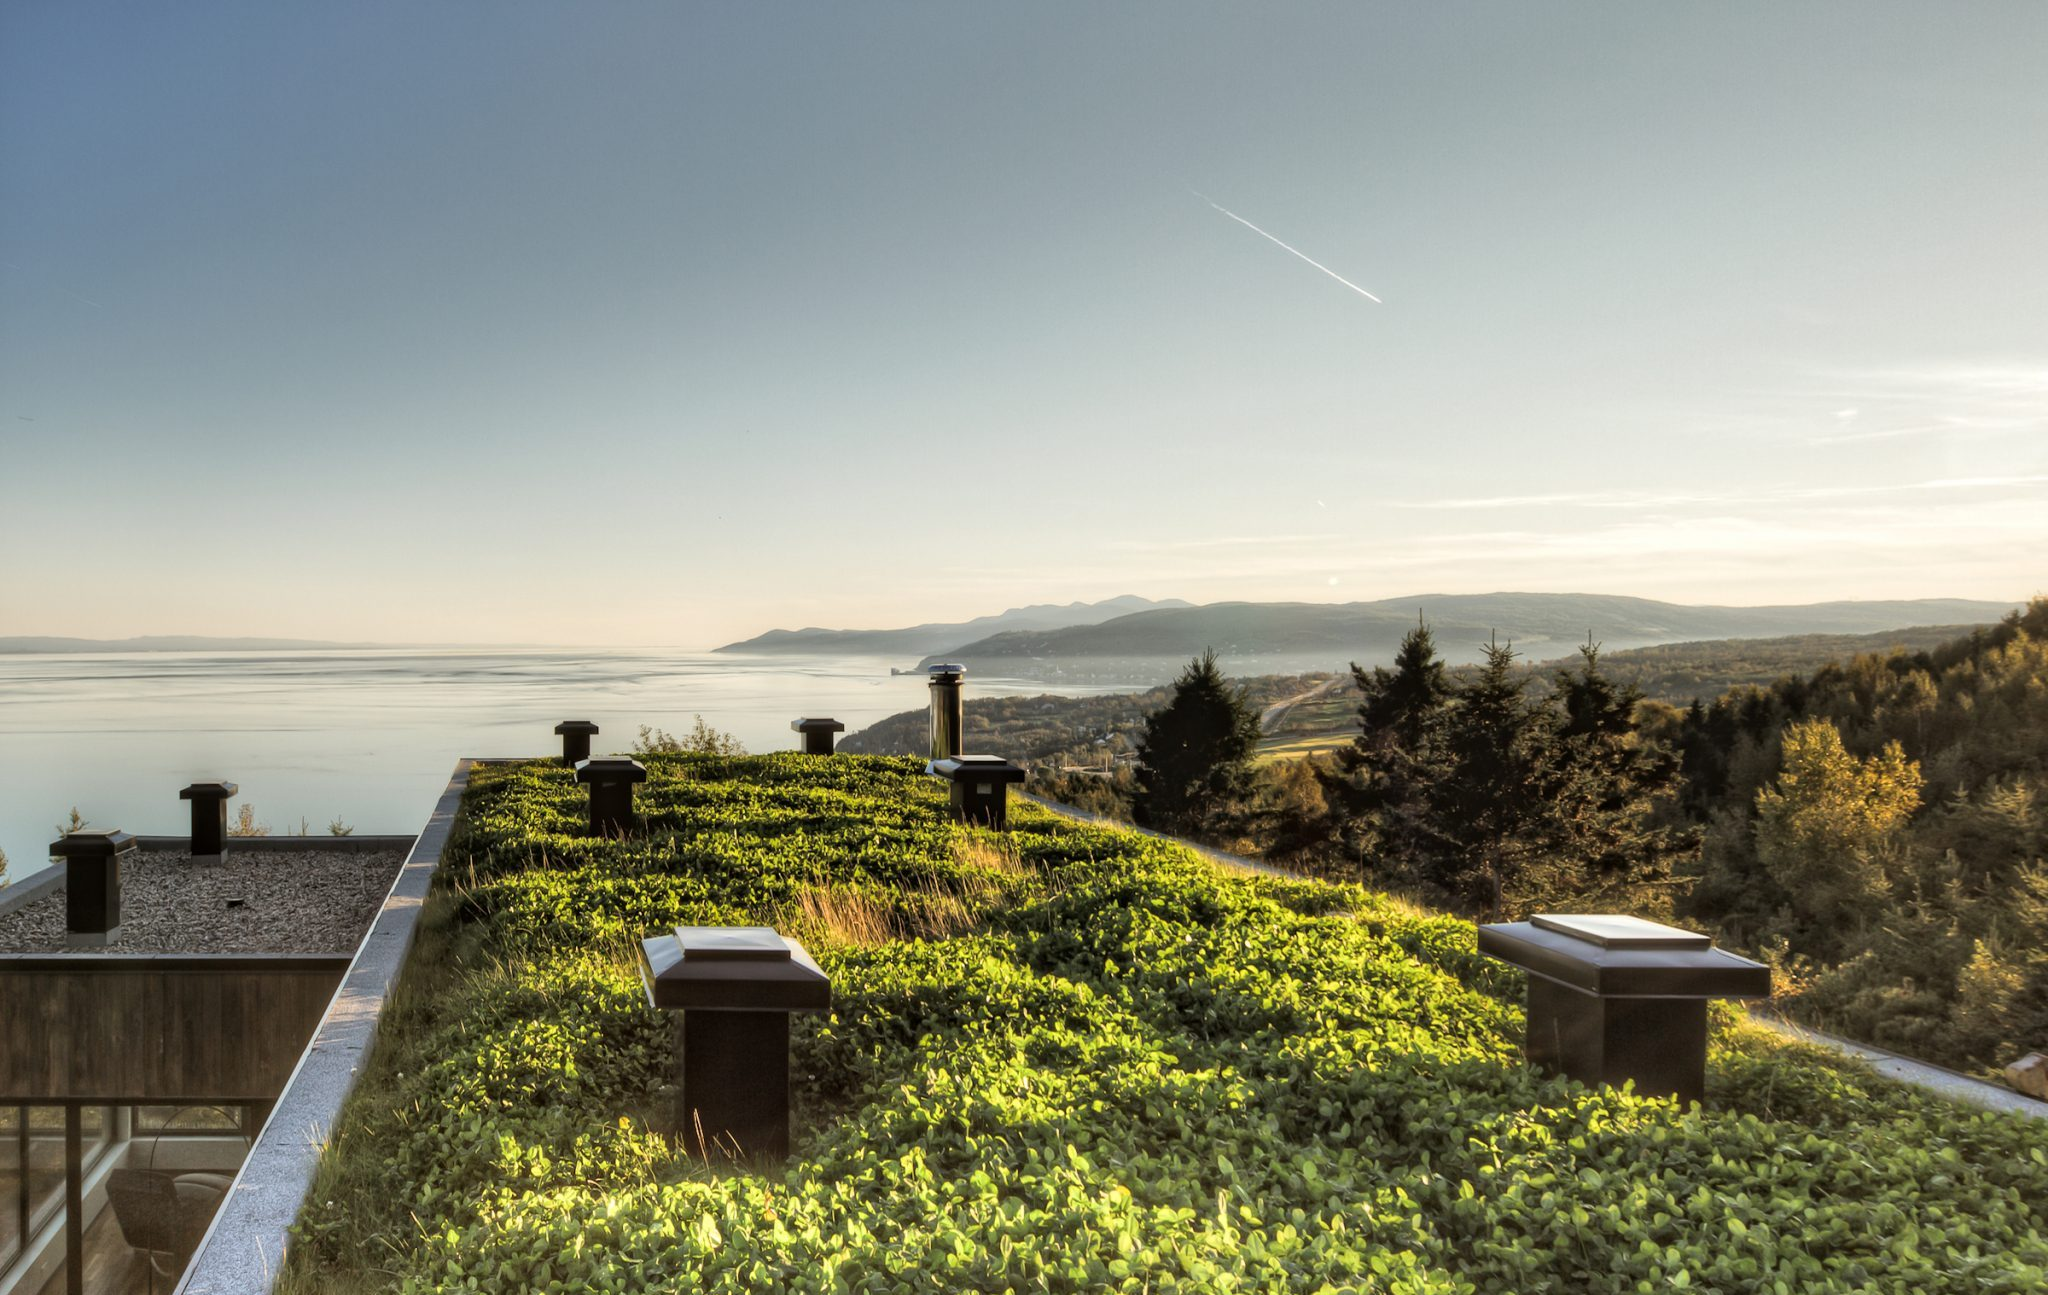 Green Roofs: A Solution that benefits everyone